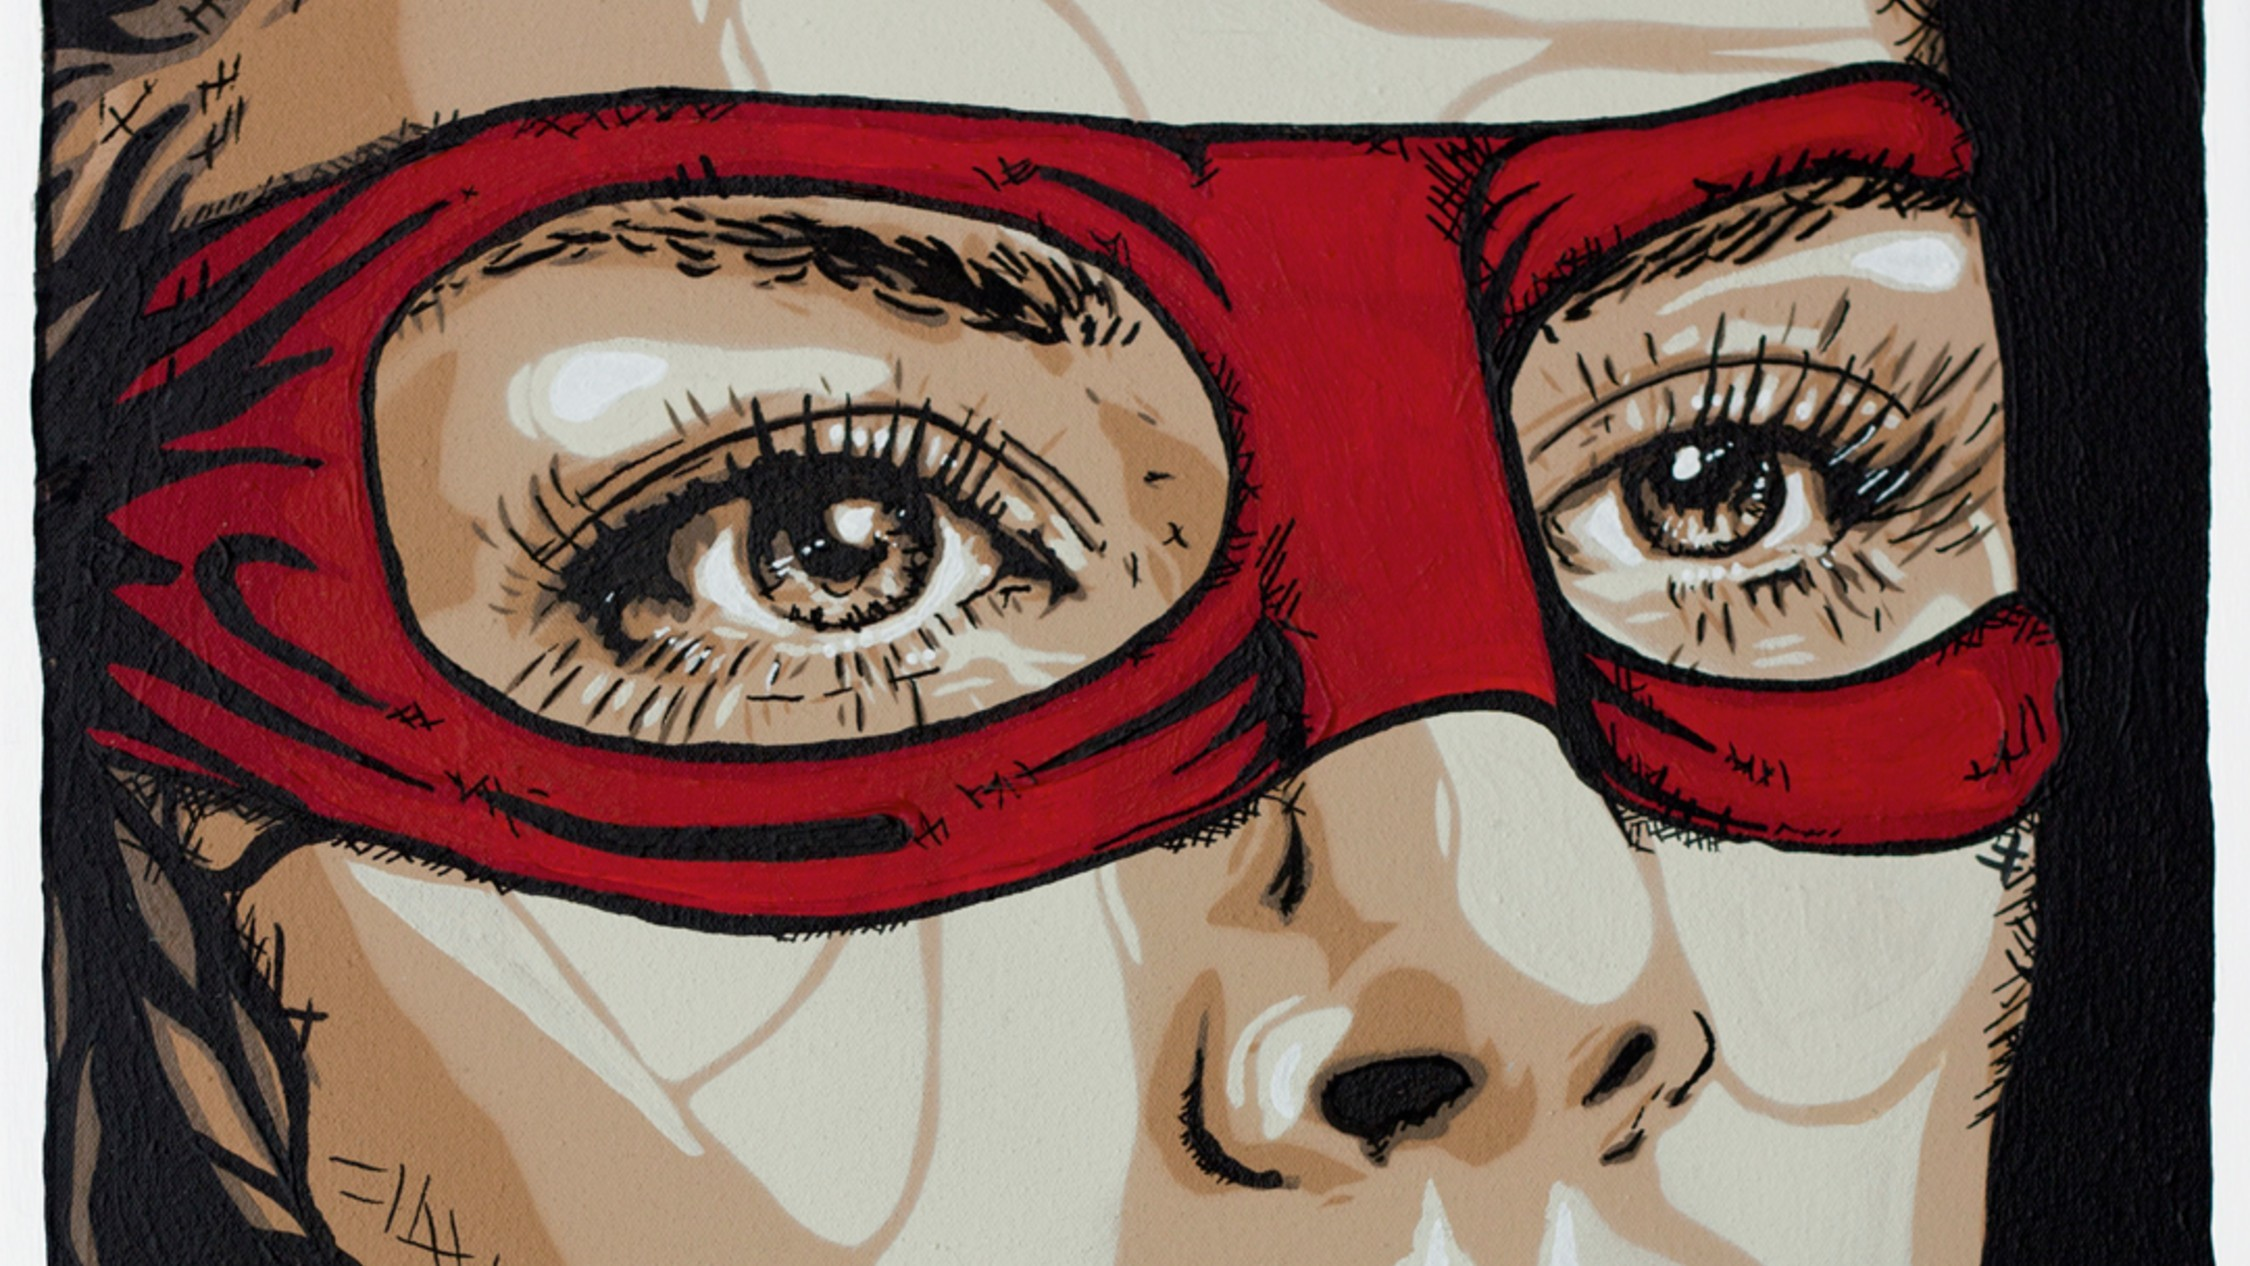 A close up of stencil art depicting a woman in a red eye mask, like a bandit or superhero